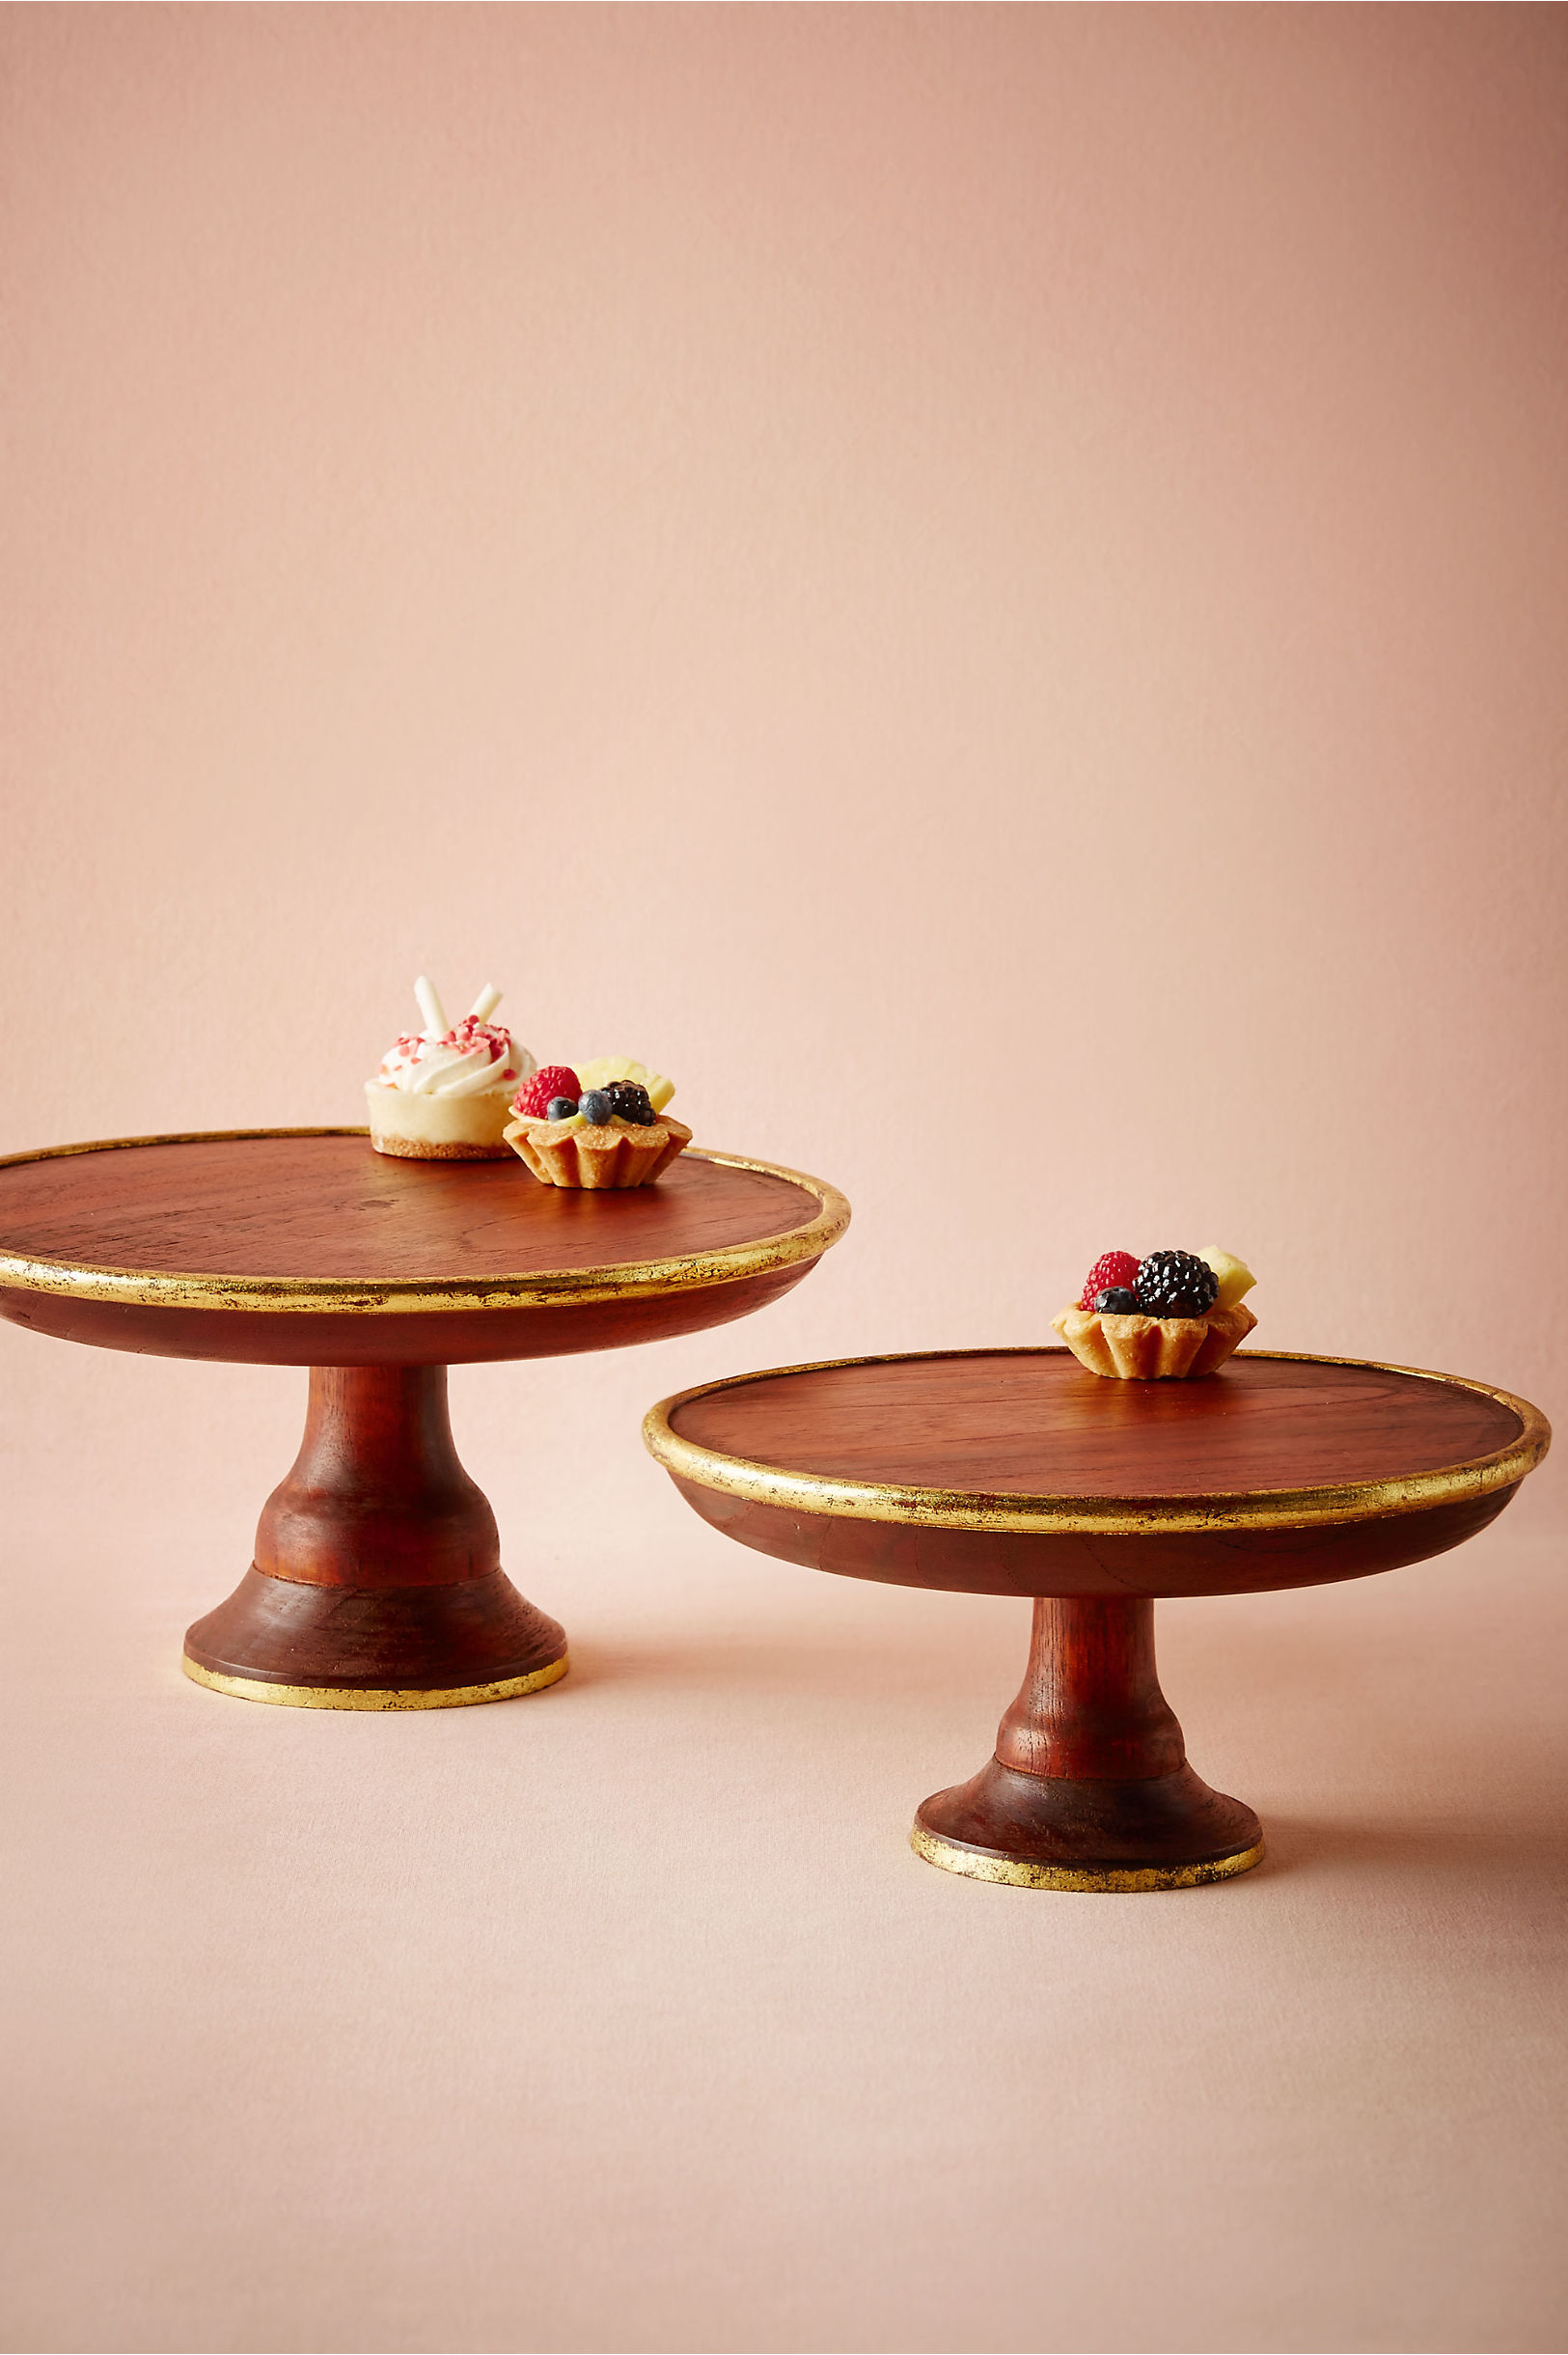 Decorative Cake Stands Gilded Wood Cake Stand In Sale Dccor Bhldn